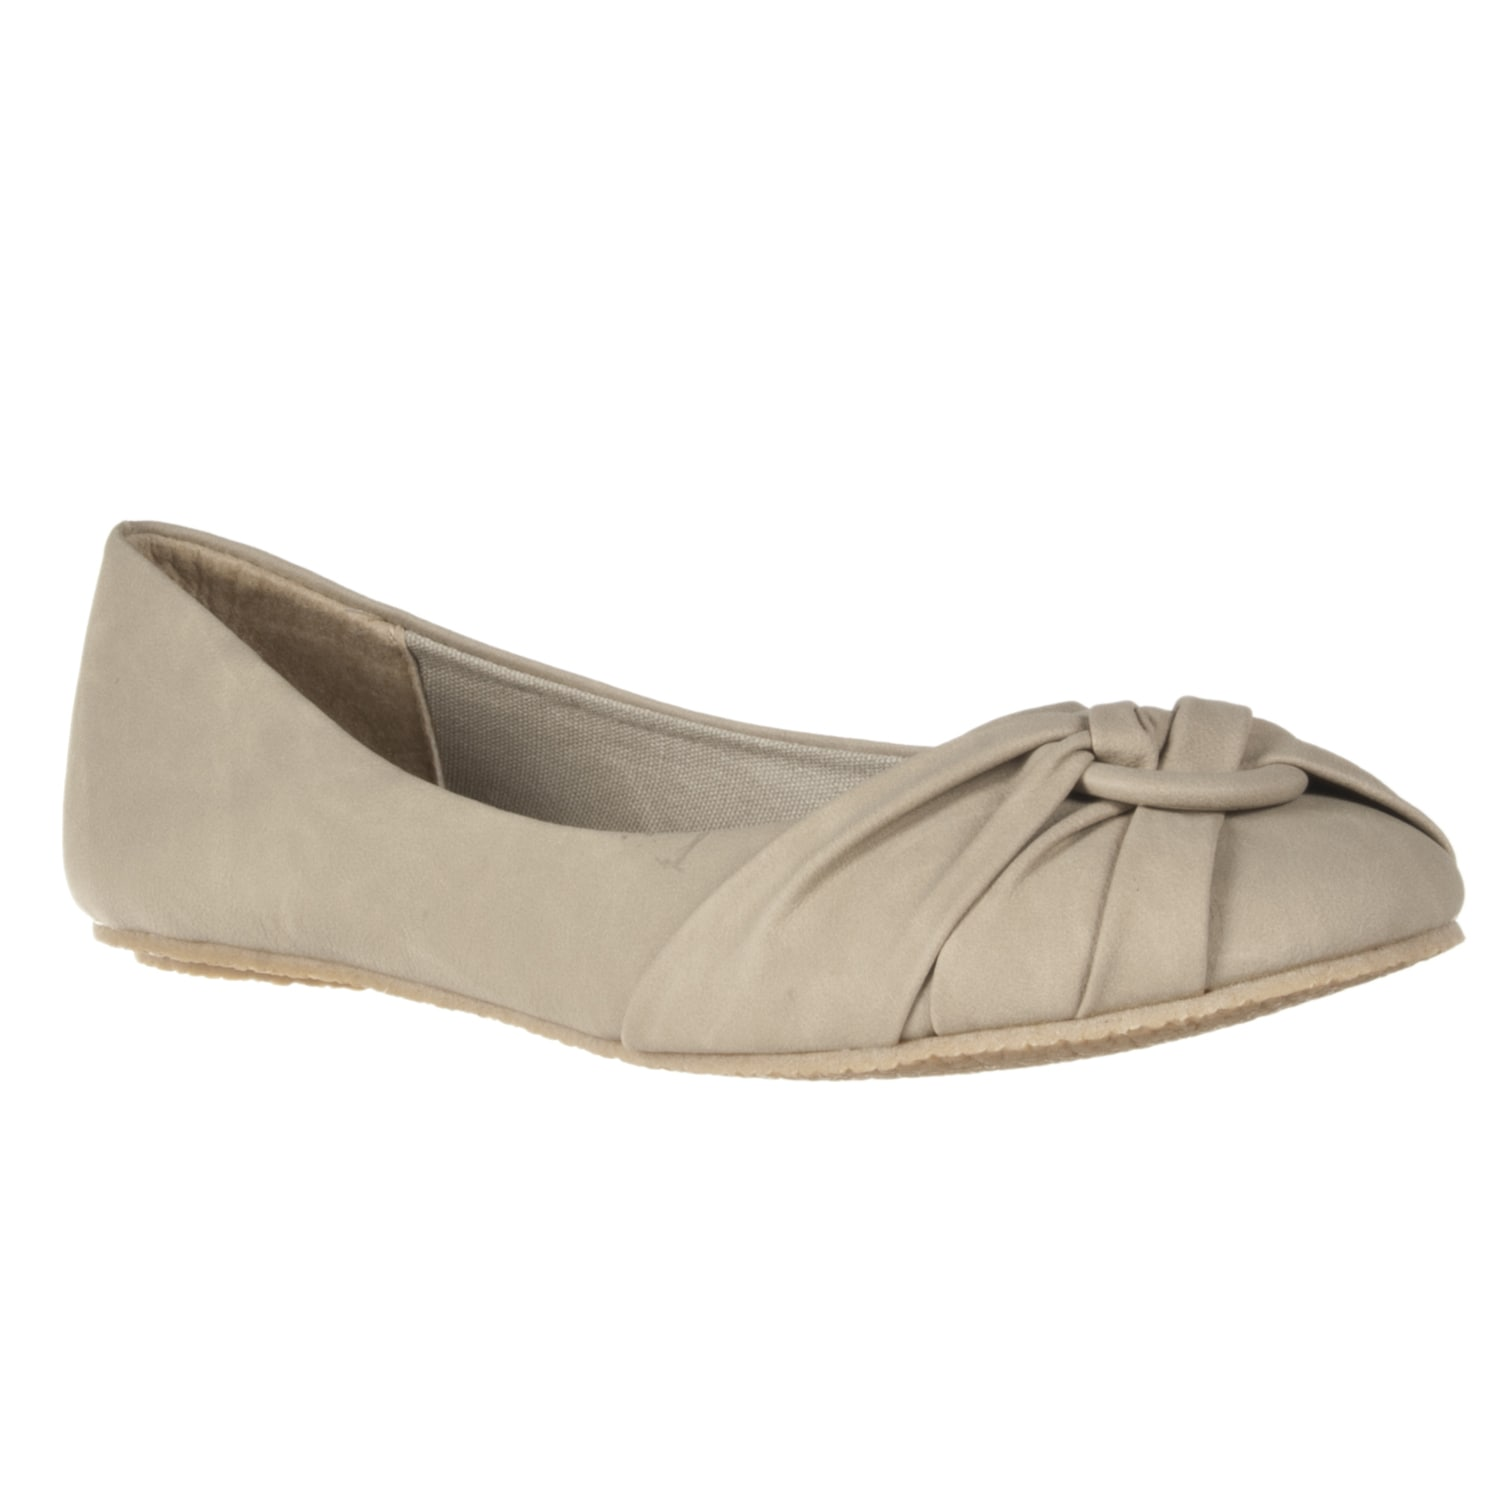 Riverberry Women's 'Brett' Natural O-ring Flats